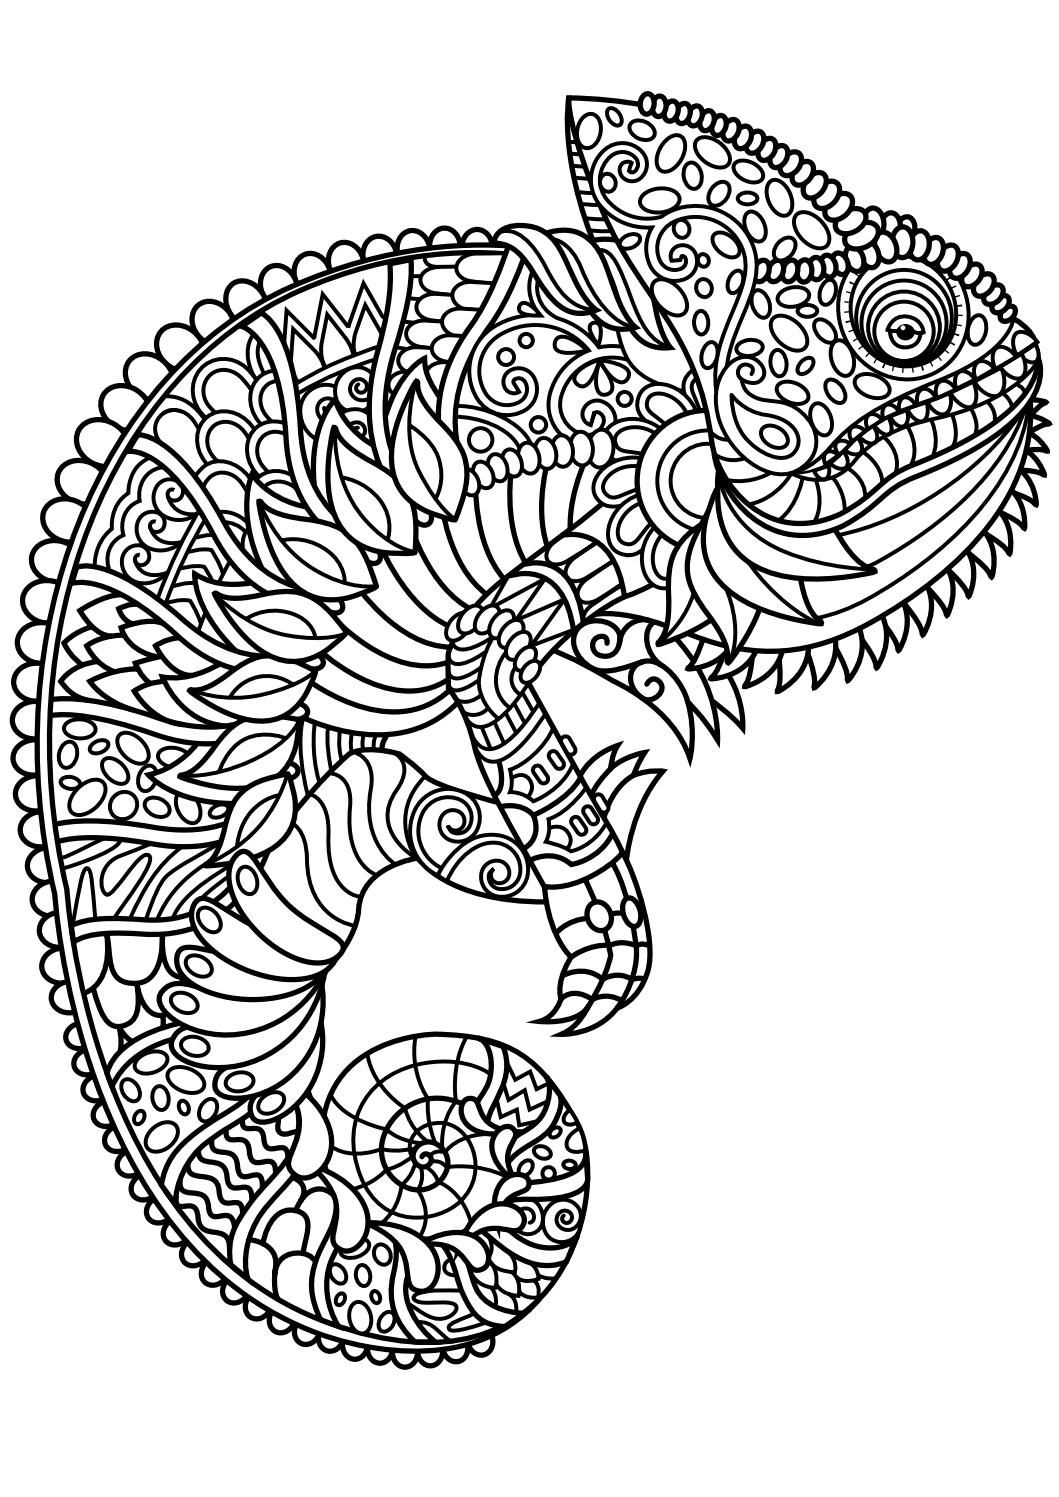 1059x1497 Cool Flowers Abstract Coloring Pages Colouring Adult Detailed